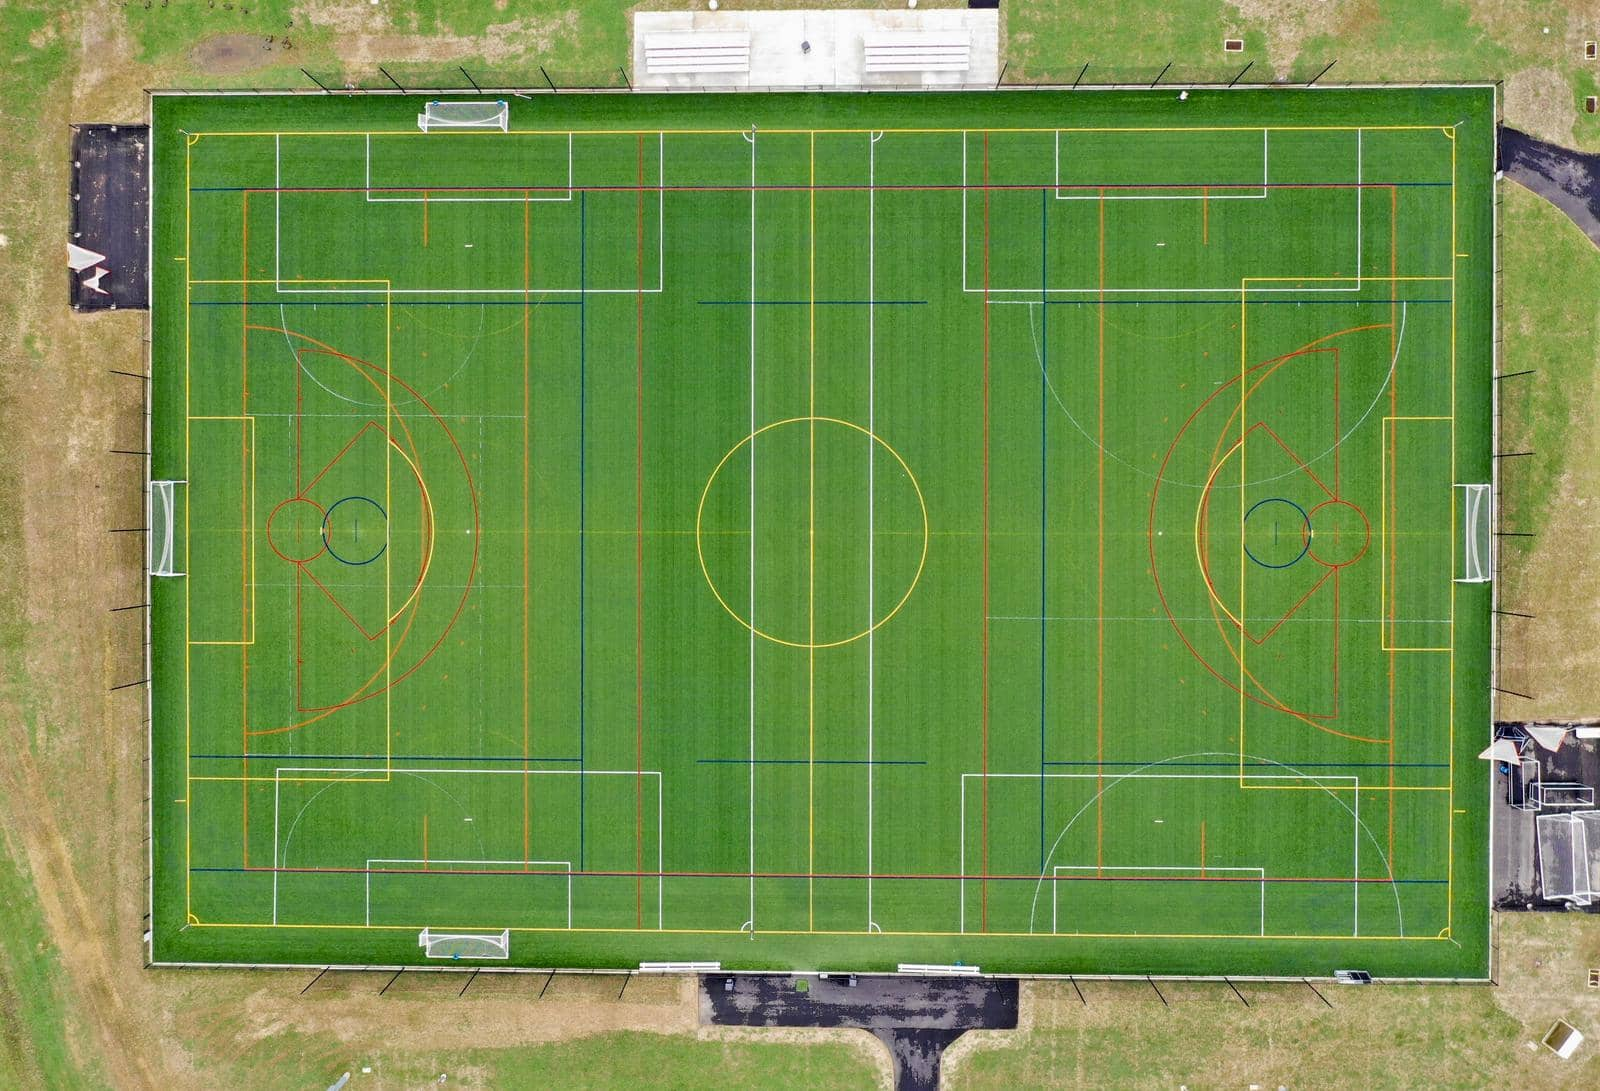 artificial turf soccer and lacrosse field